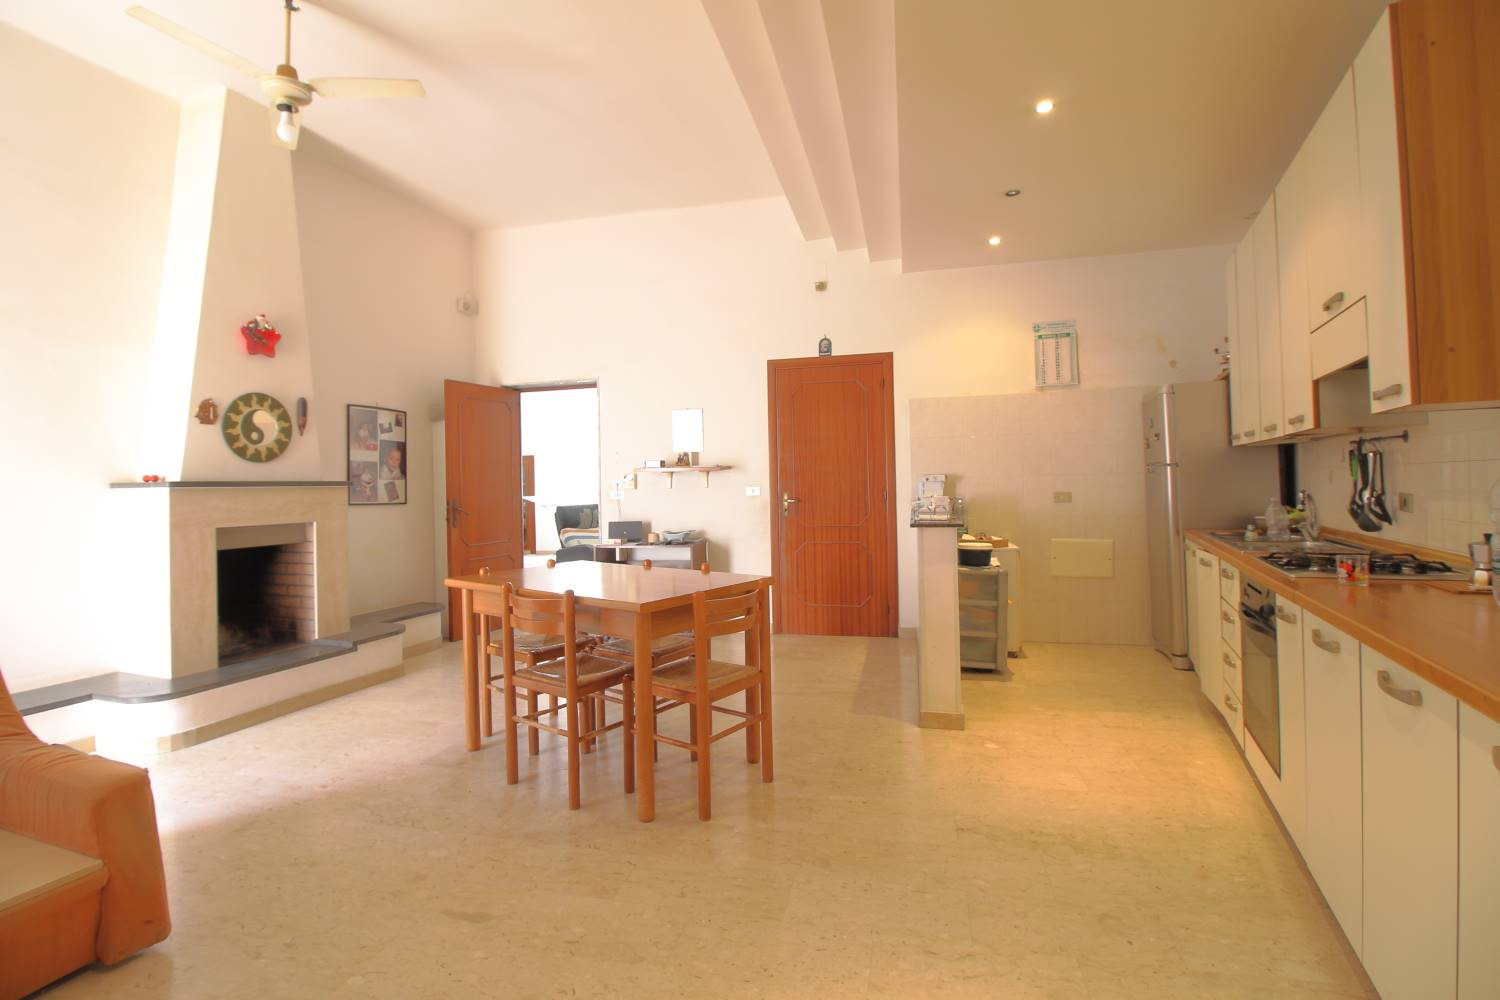 MONOPOLI, Apartment for sale of 141 Sq. mt., Habitable, Heating Individual heating system, Energetic class: G, Epi: 165 kwh/m2 year, placed at 2° on 2, composed by: 4 Rooms, Separate kitchen, , 3